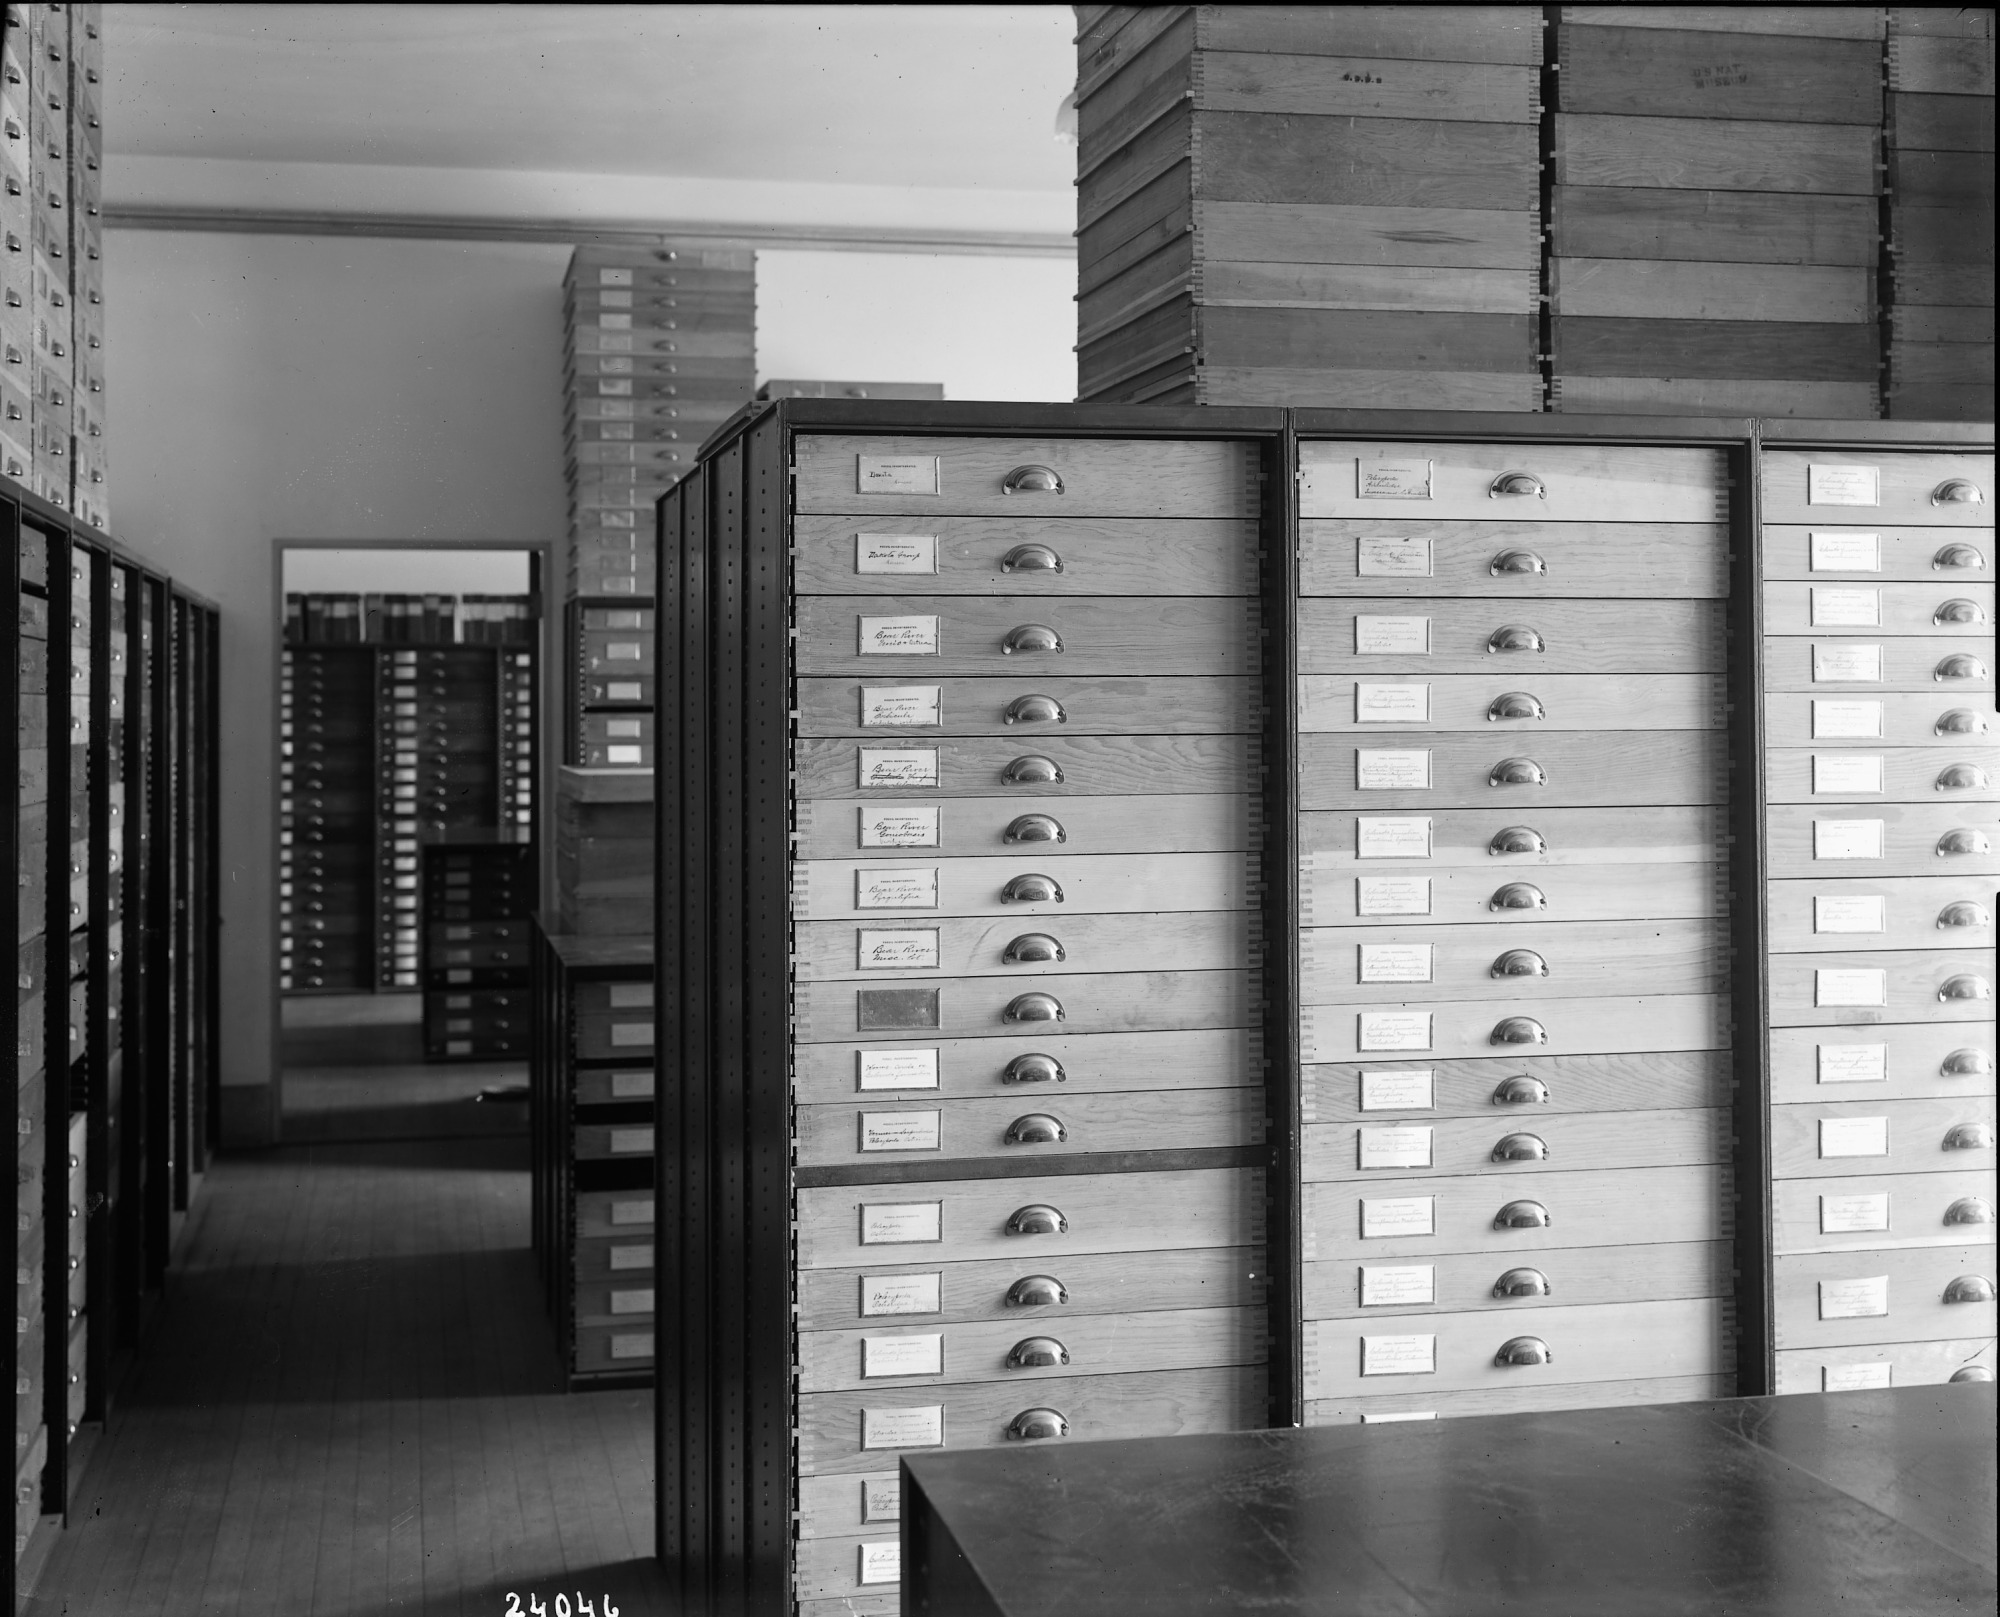 Storage in the Paleontology Laboratory, National Museum of Natural History, 1911